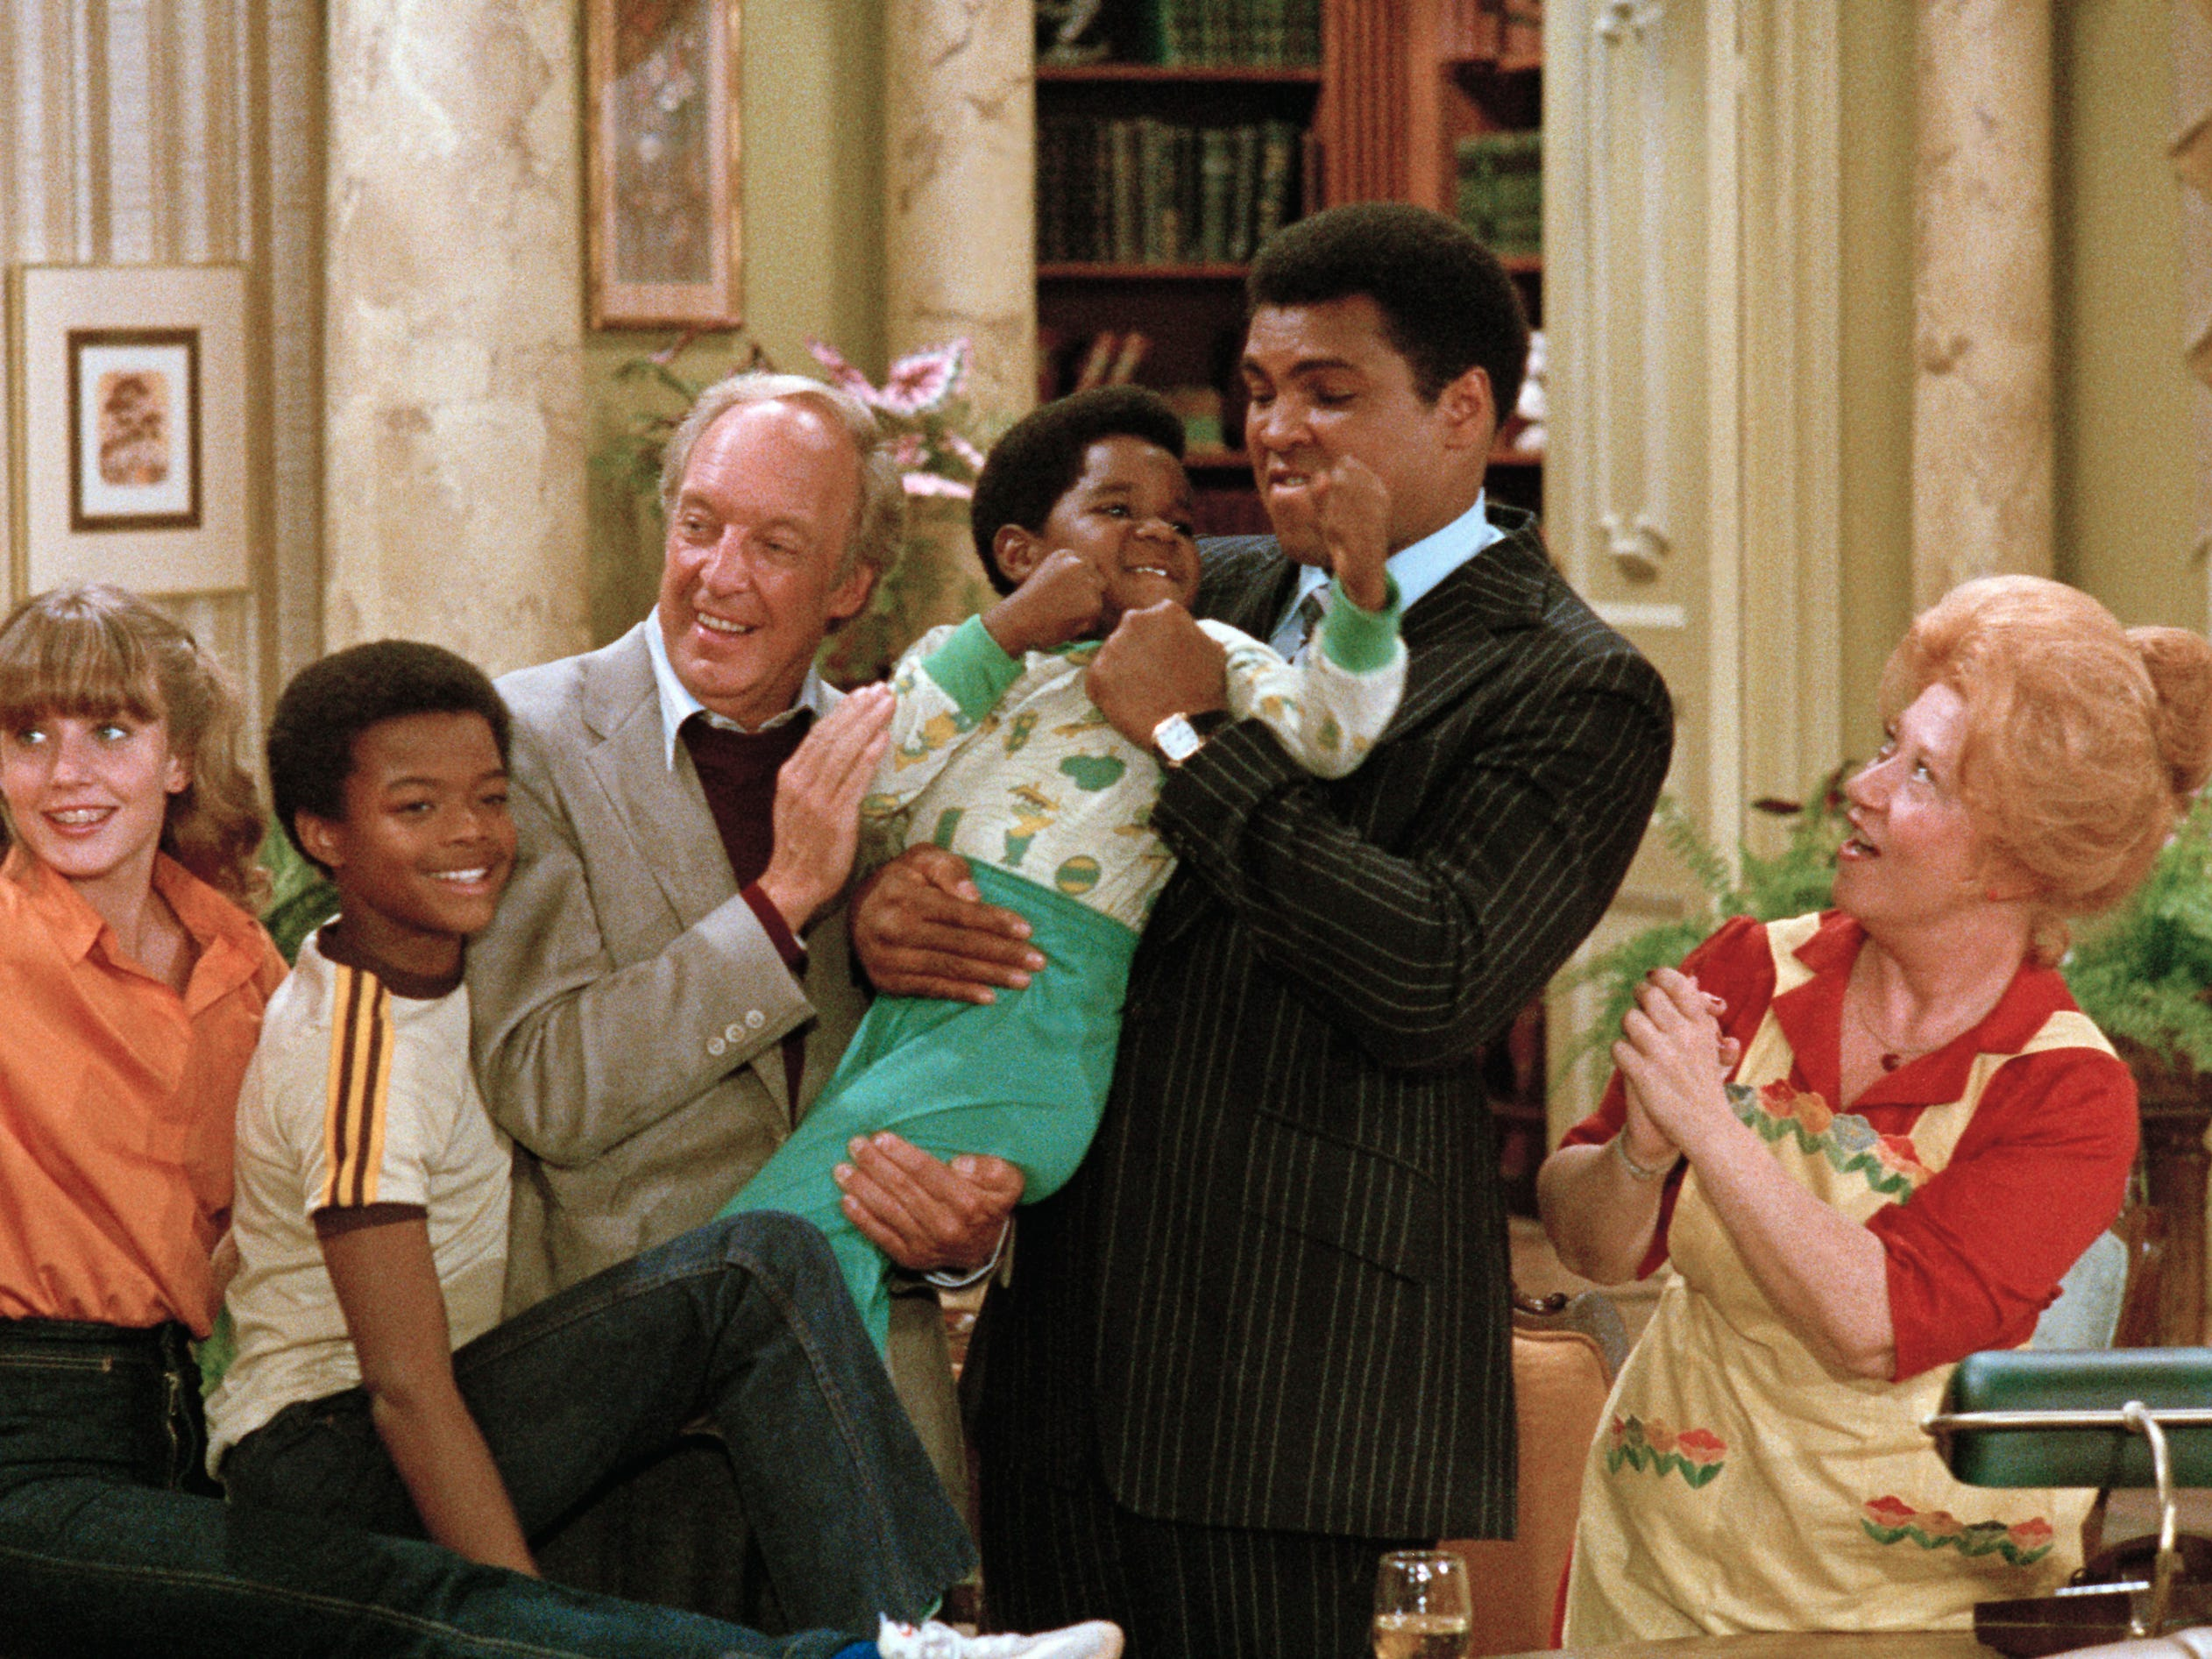 """The Hero""  episode of DIFF'RENT STROKES Aired Oct. 24, 1979 and featured Dana Plato as Kimberly Drummond, Todd Bridges as Willis Jackson, Conrad Bain as Philip Drummond, Gary Coleman as Arnold Jackson, Muhammad Ali as Himself, Charlotte Rae as Edna Garrett"